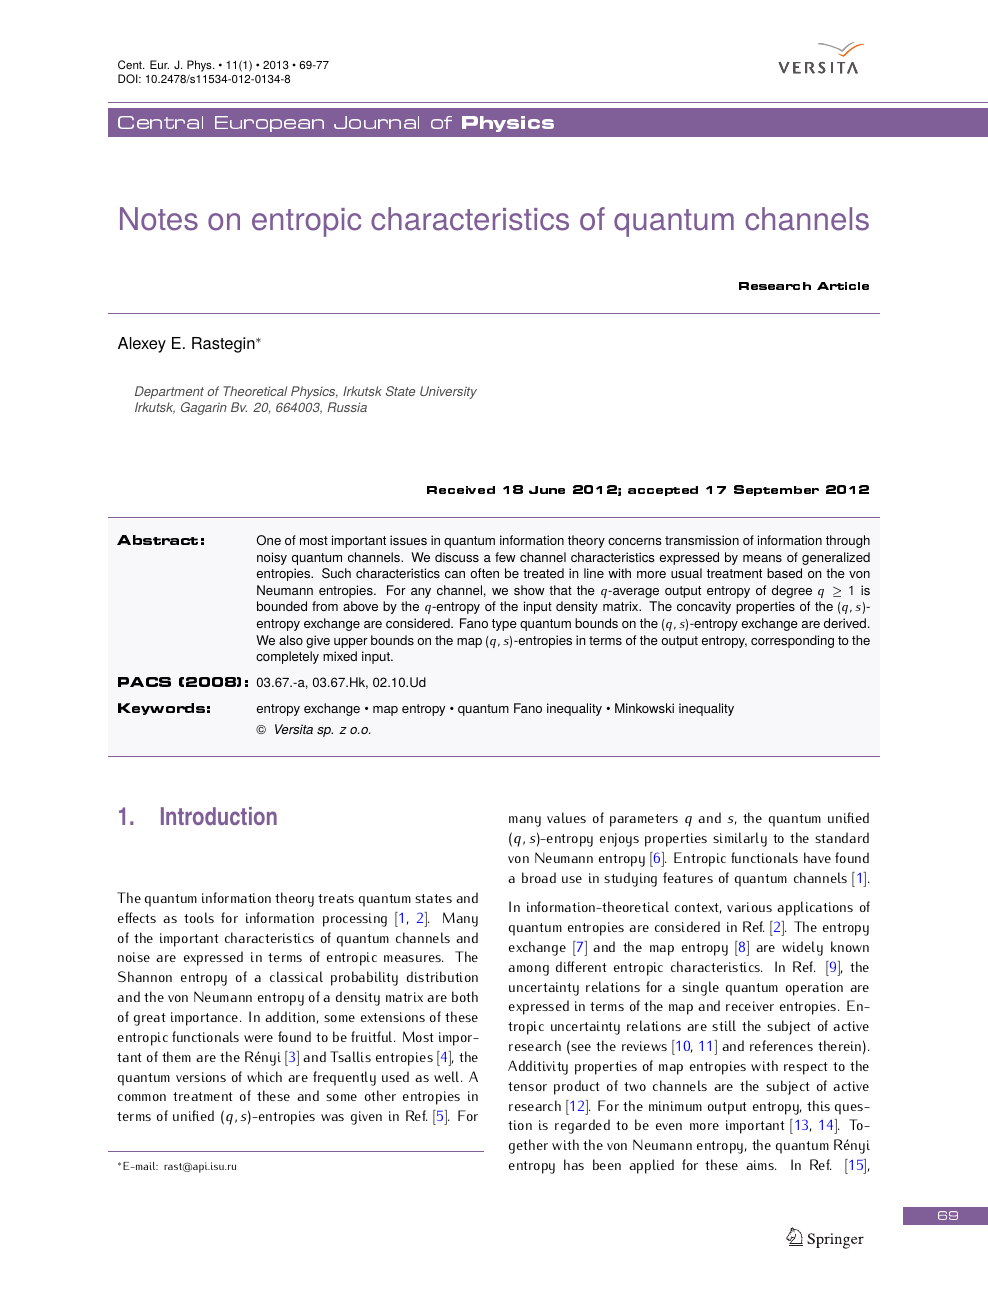 Notes on entropic characteristics of quantum channels